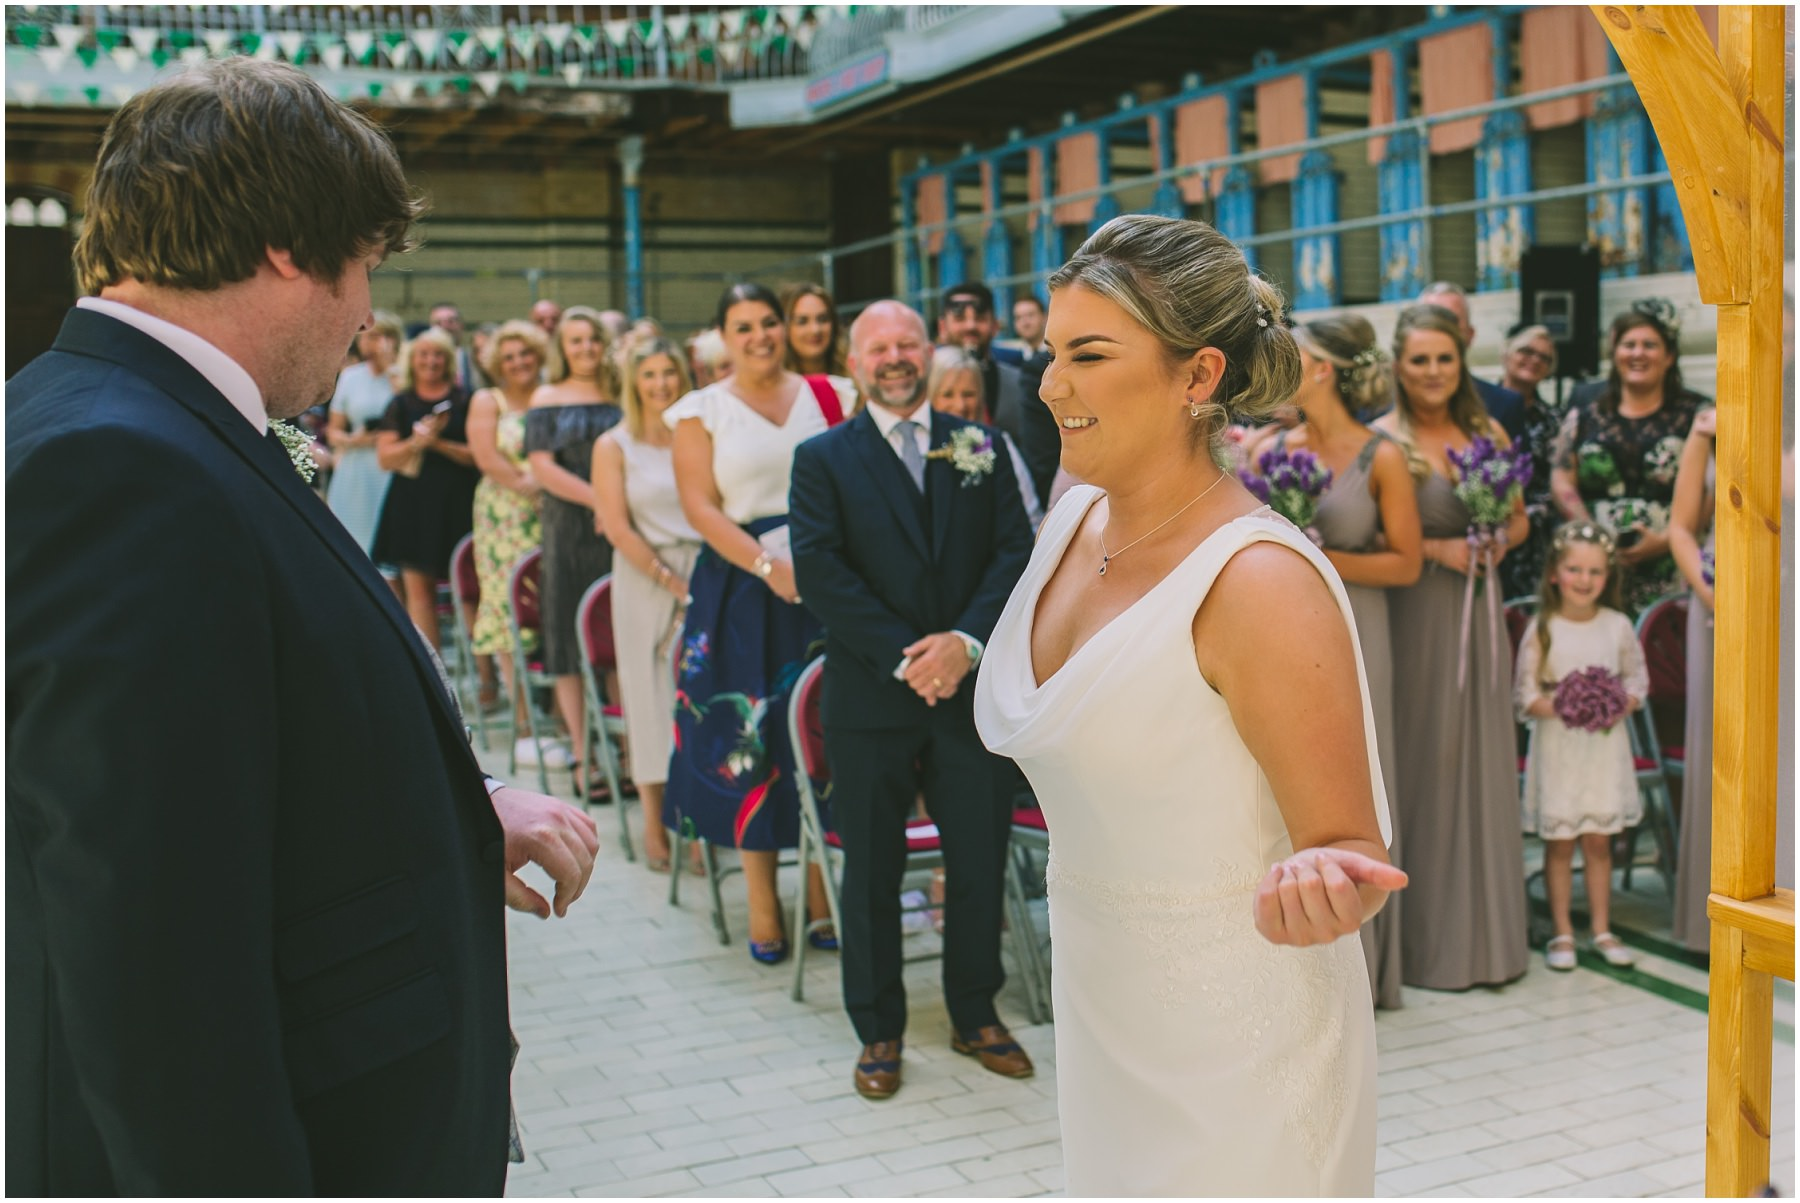 Couple get married in the swimming pool at Victoria Baths